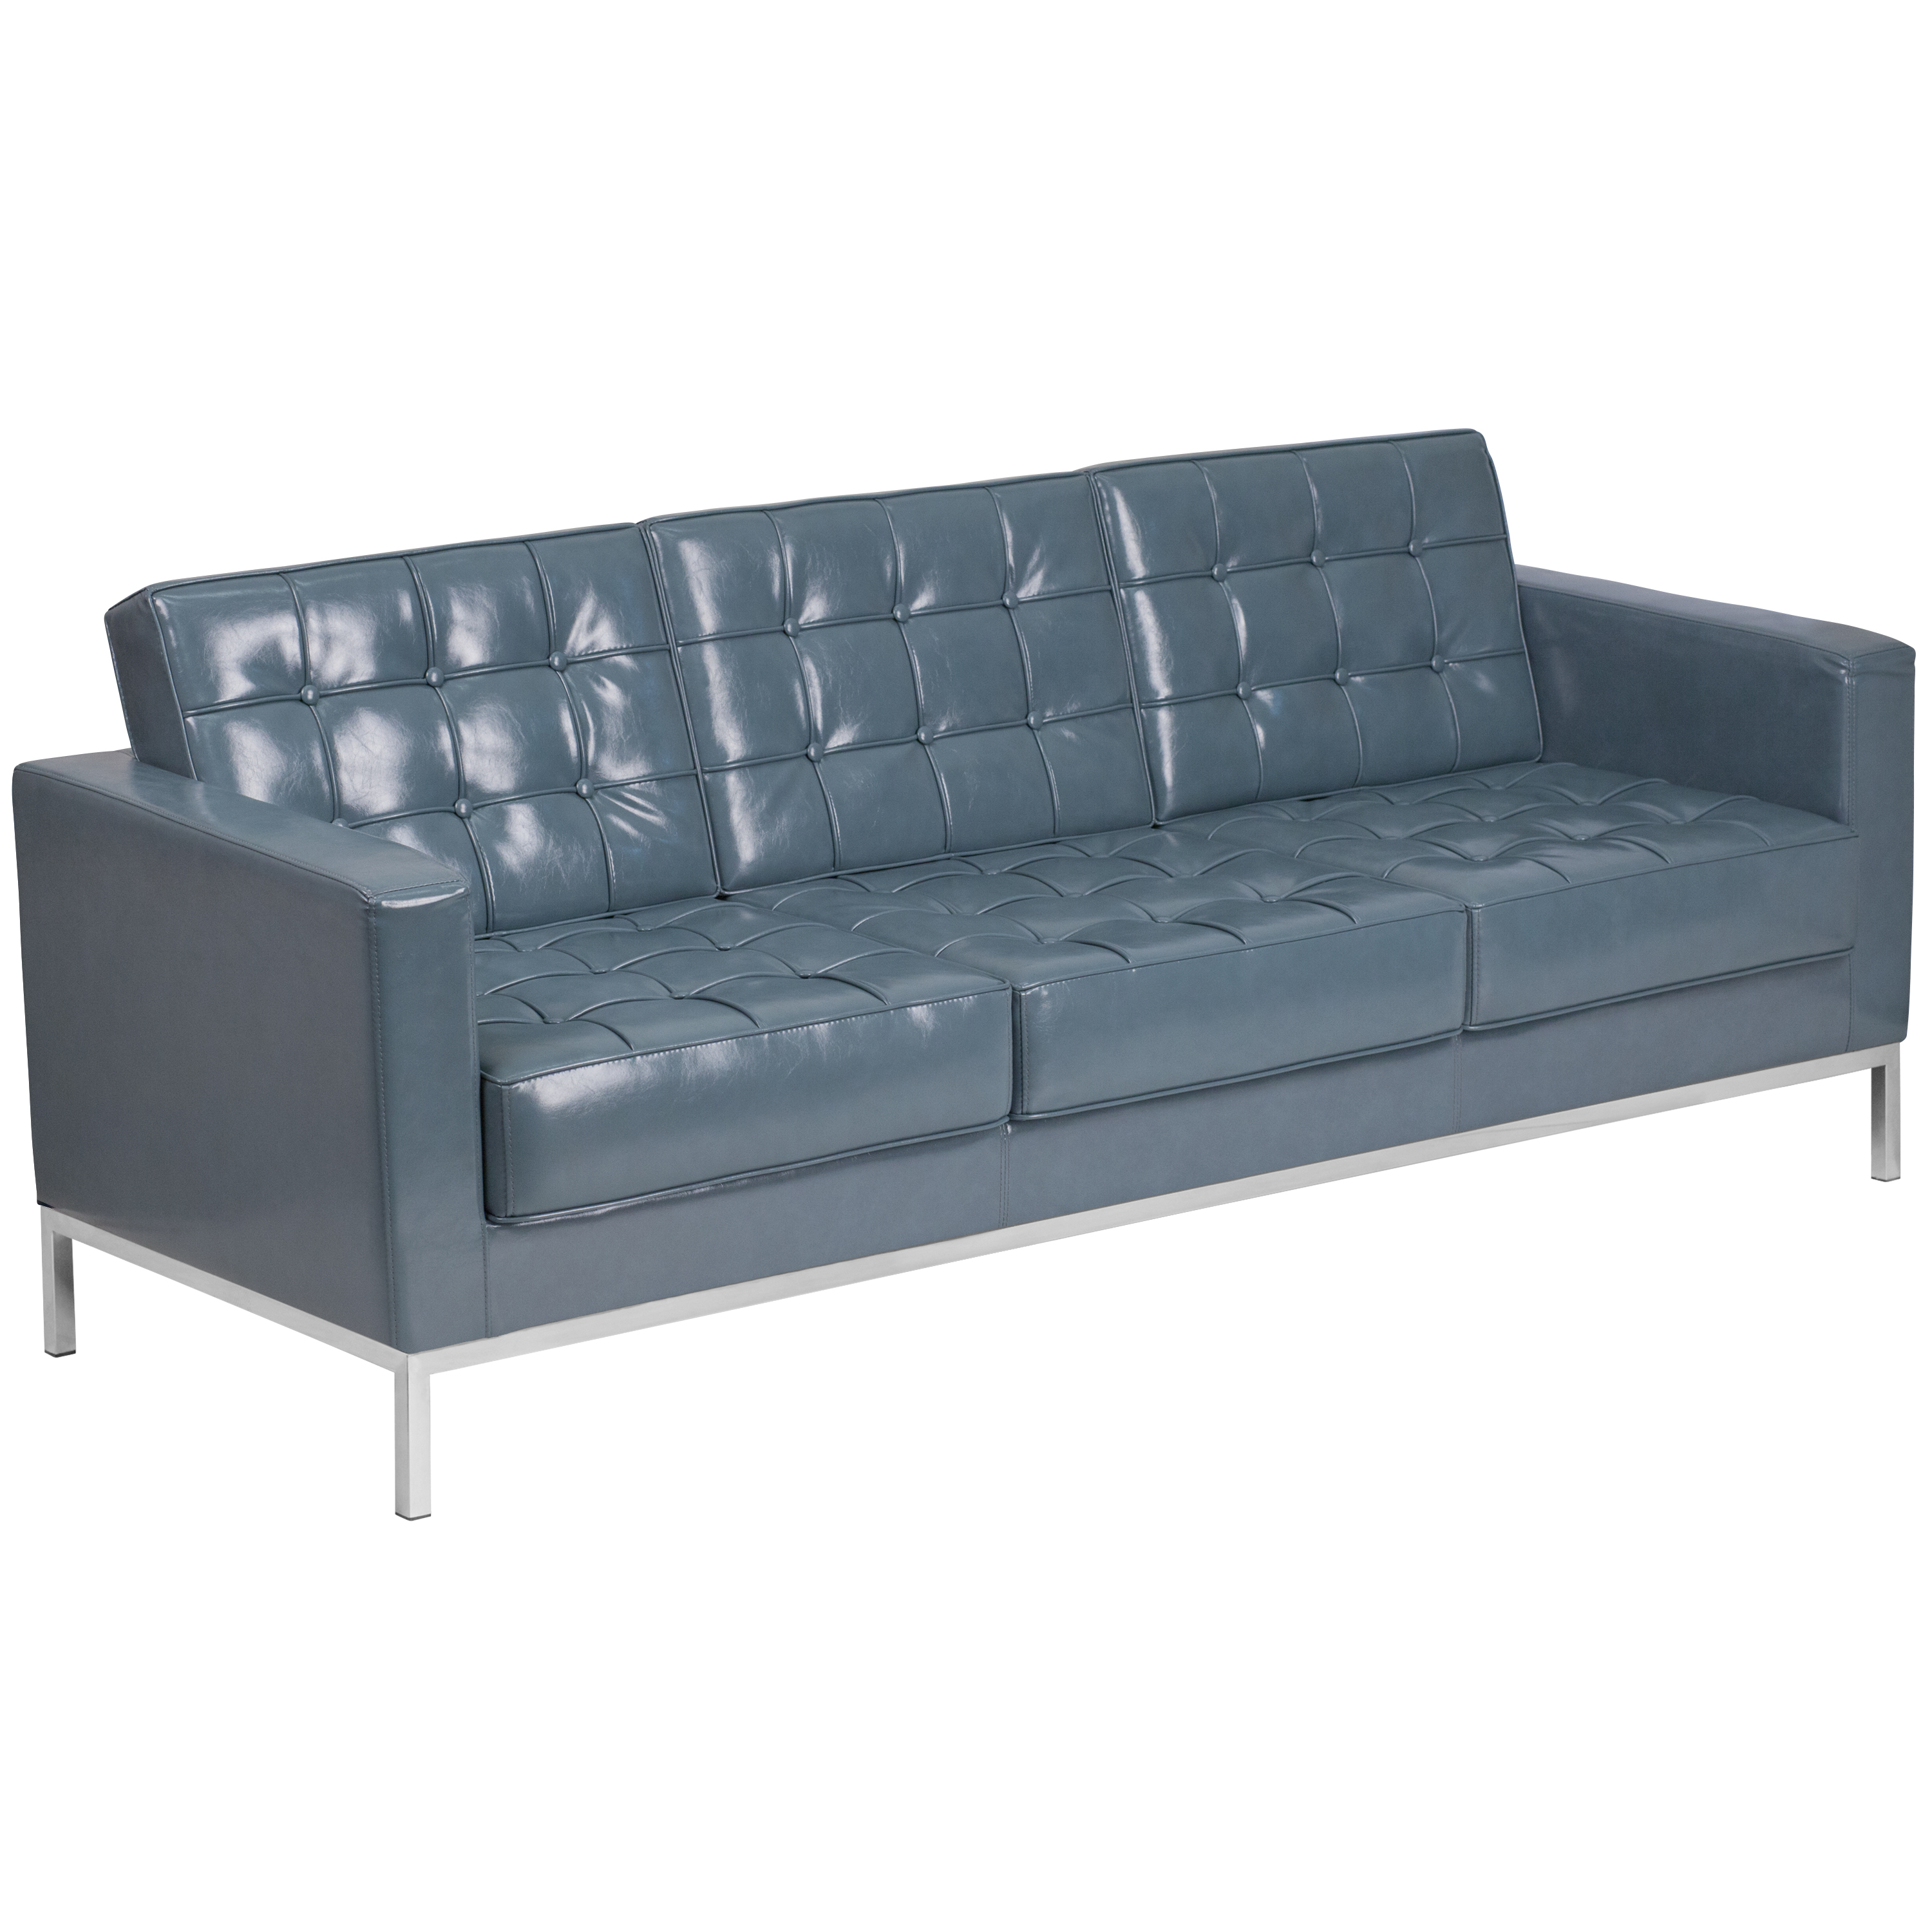 steel frame sofa quality leather sofas melbourne hercules lacey series contemporary gray with